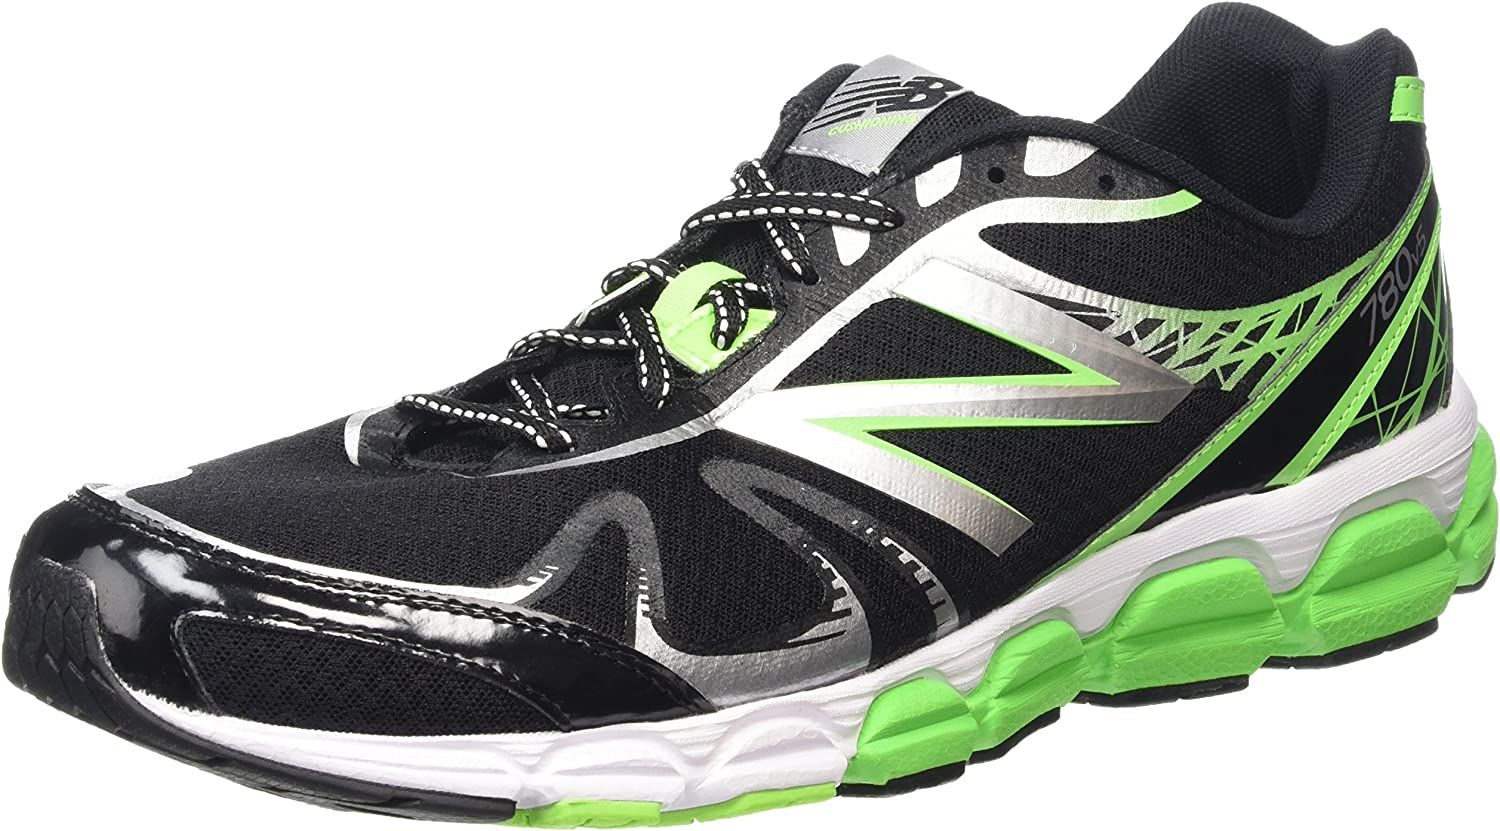 New Balance M780BB5 - Zapatillas de running para hombre, BLACK/GREEN (004), EU 45.5: Amazon.es: Zapatos y complementos